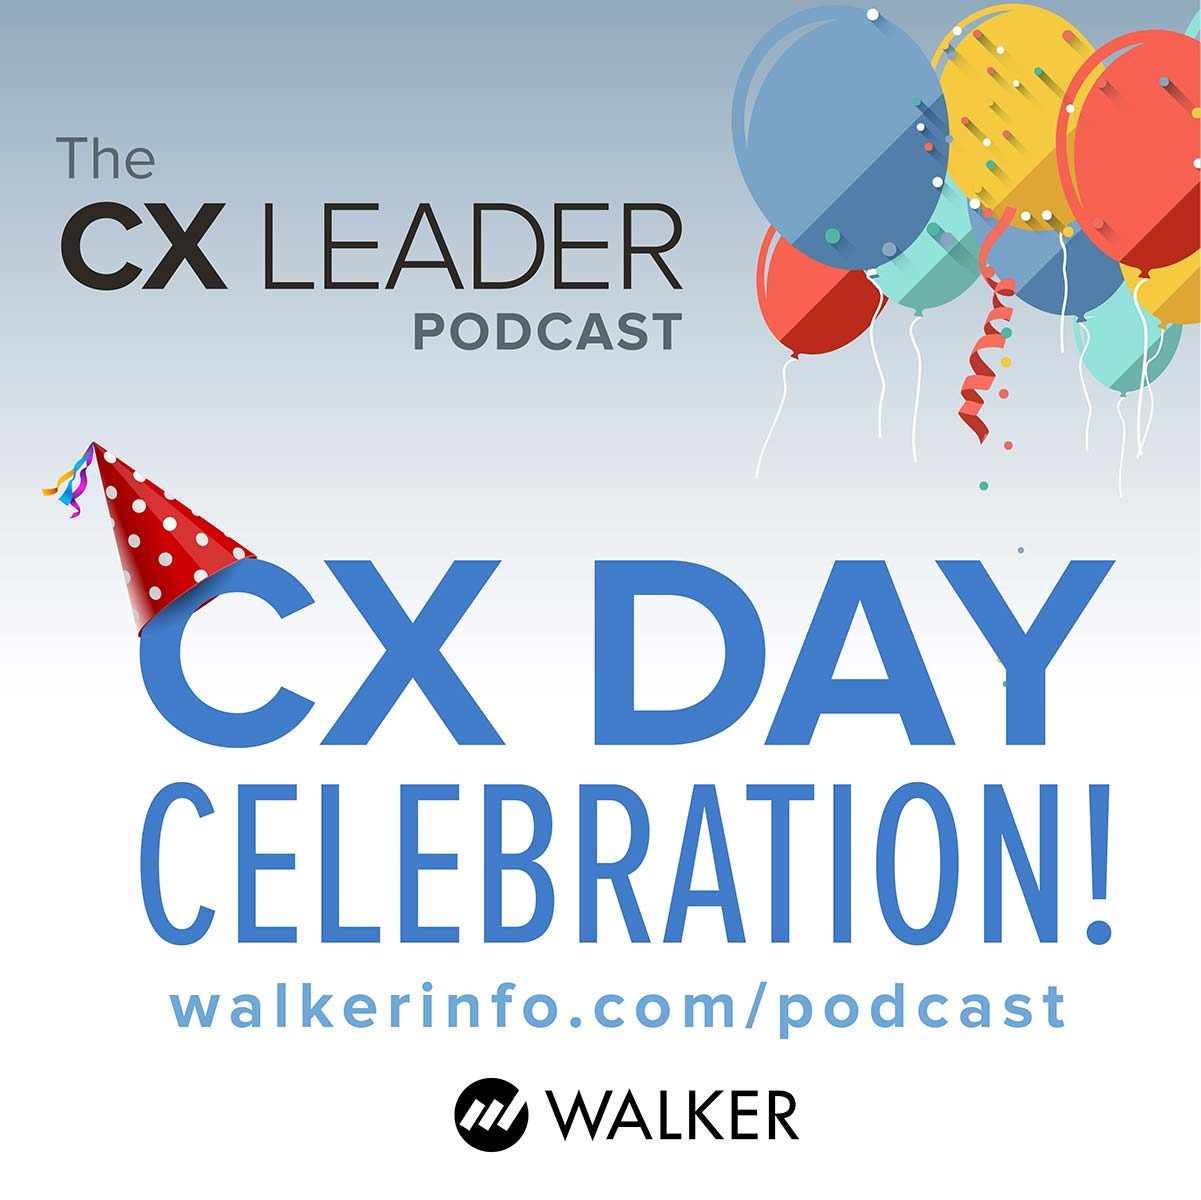 CX Day Celebration!